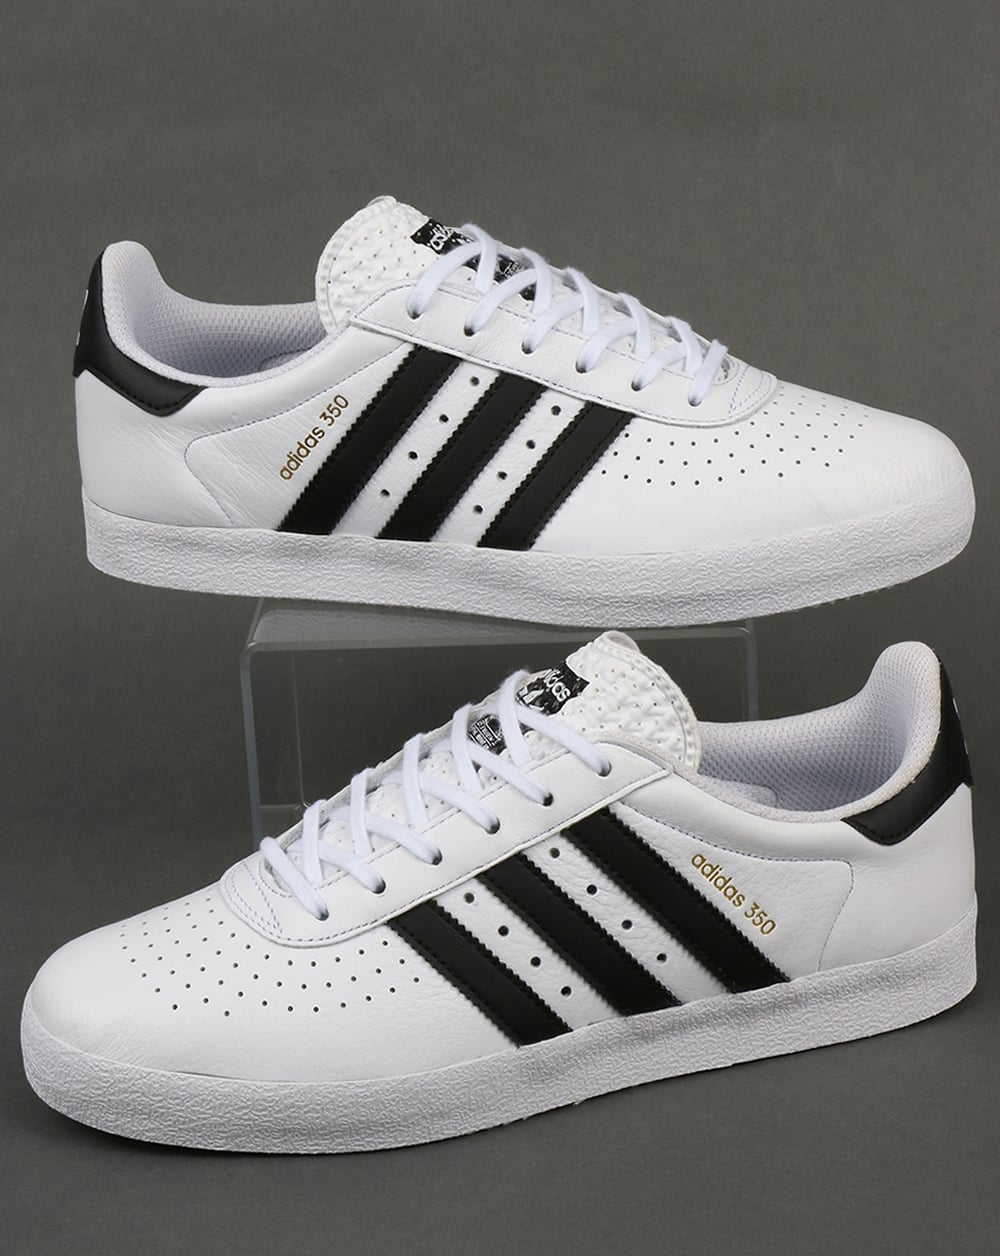 Adidas 350 Trainers White/Black,leather